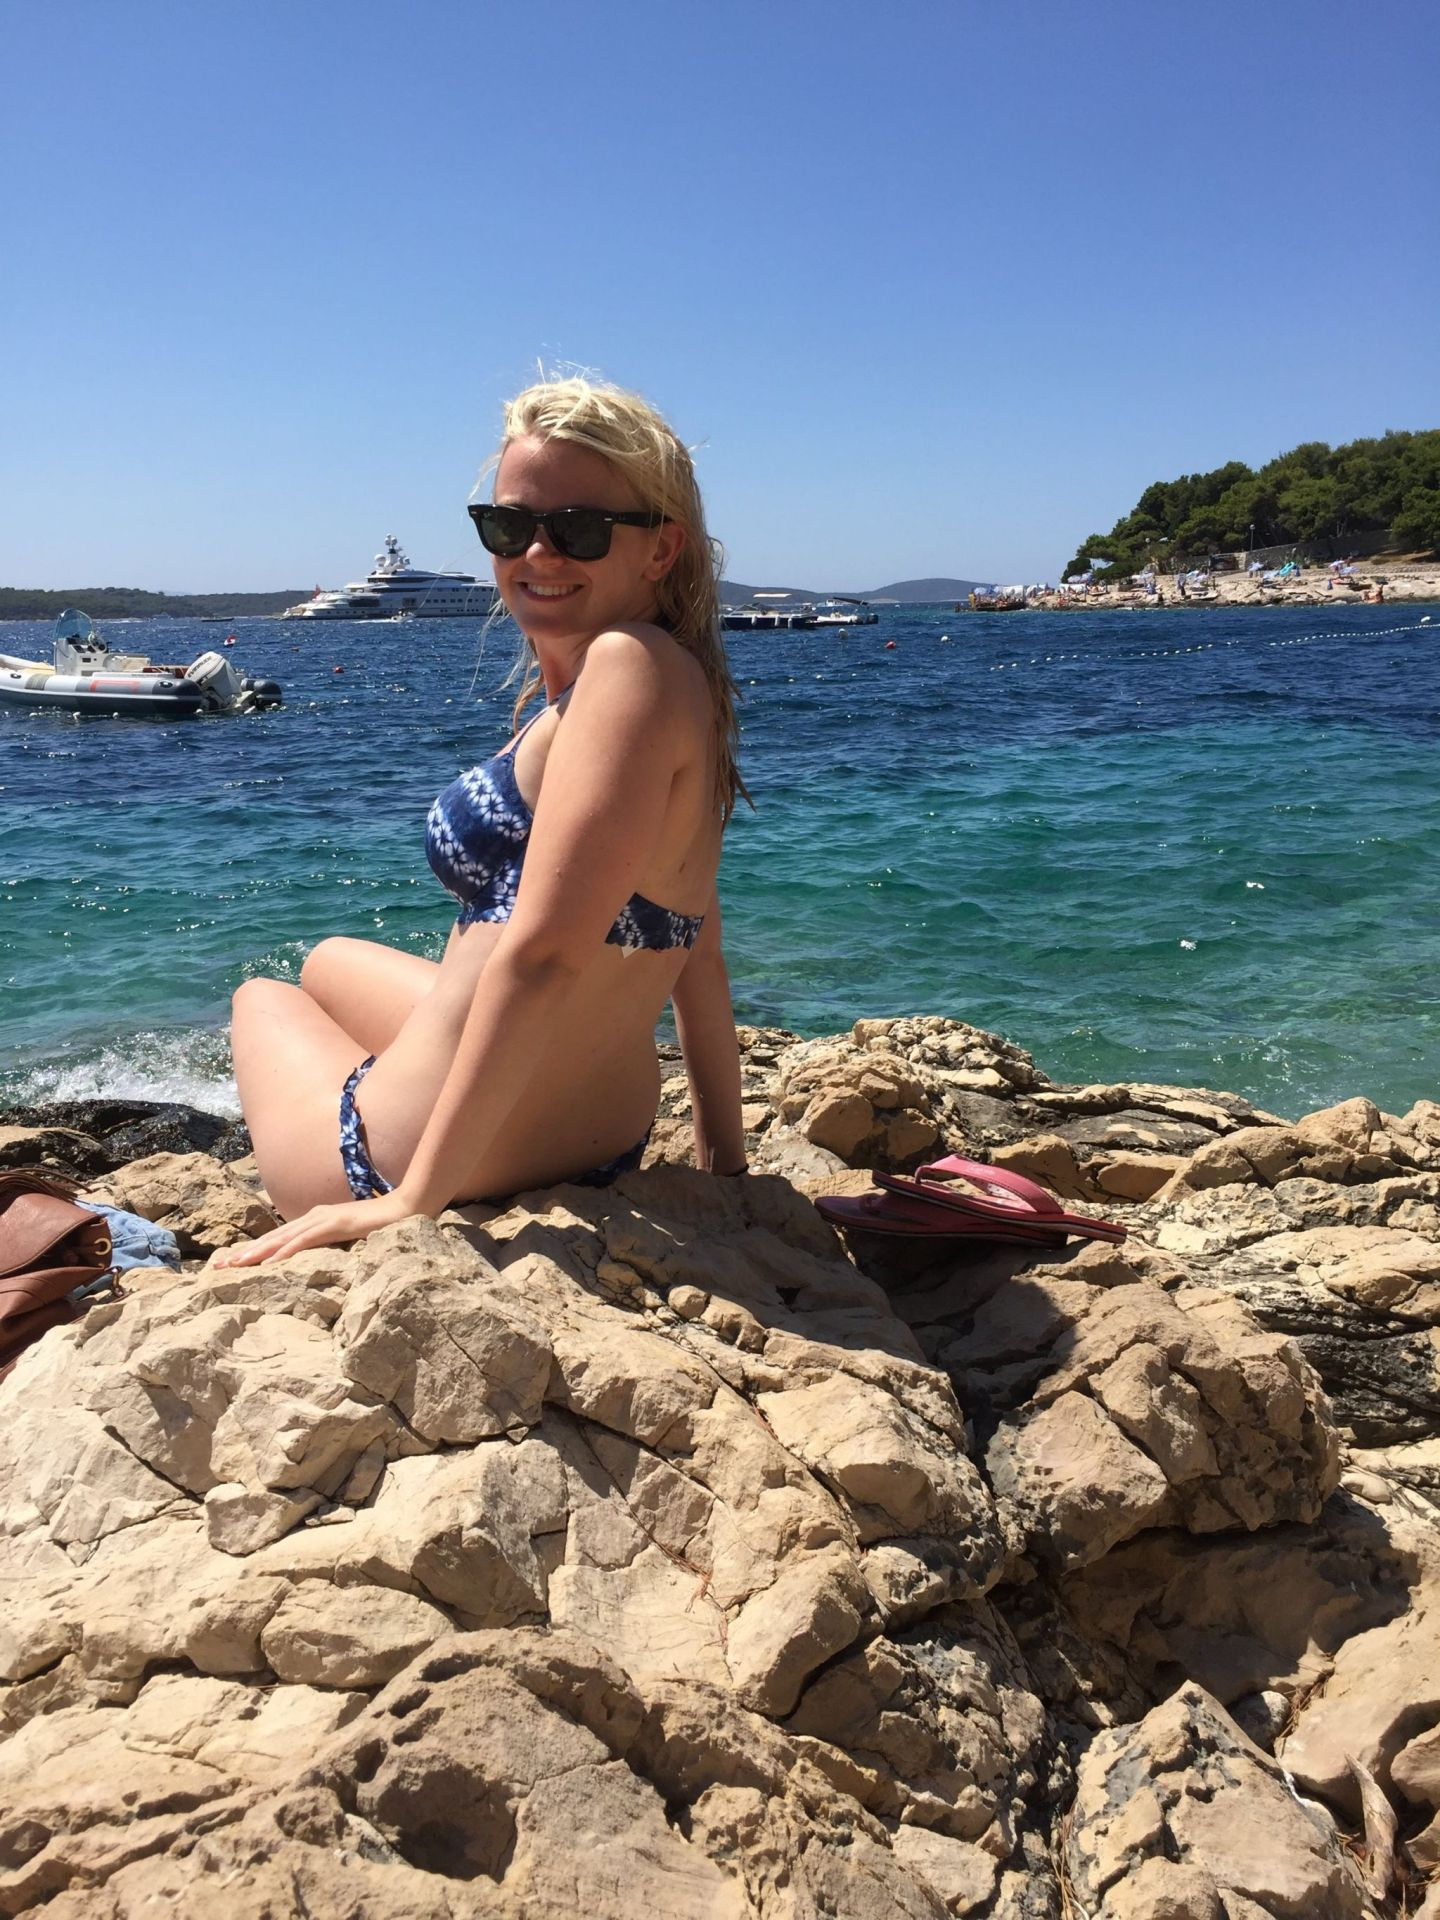 Sunbathing next to the Adriatic Sea, Croatia